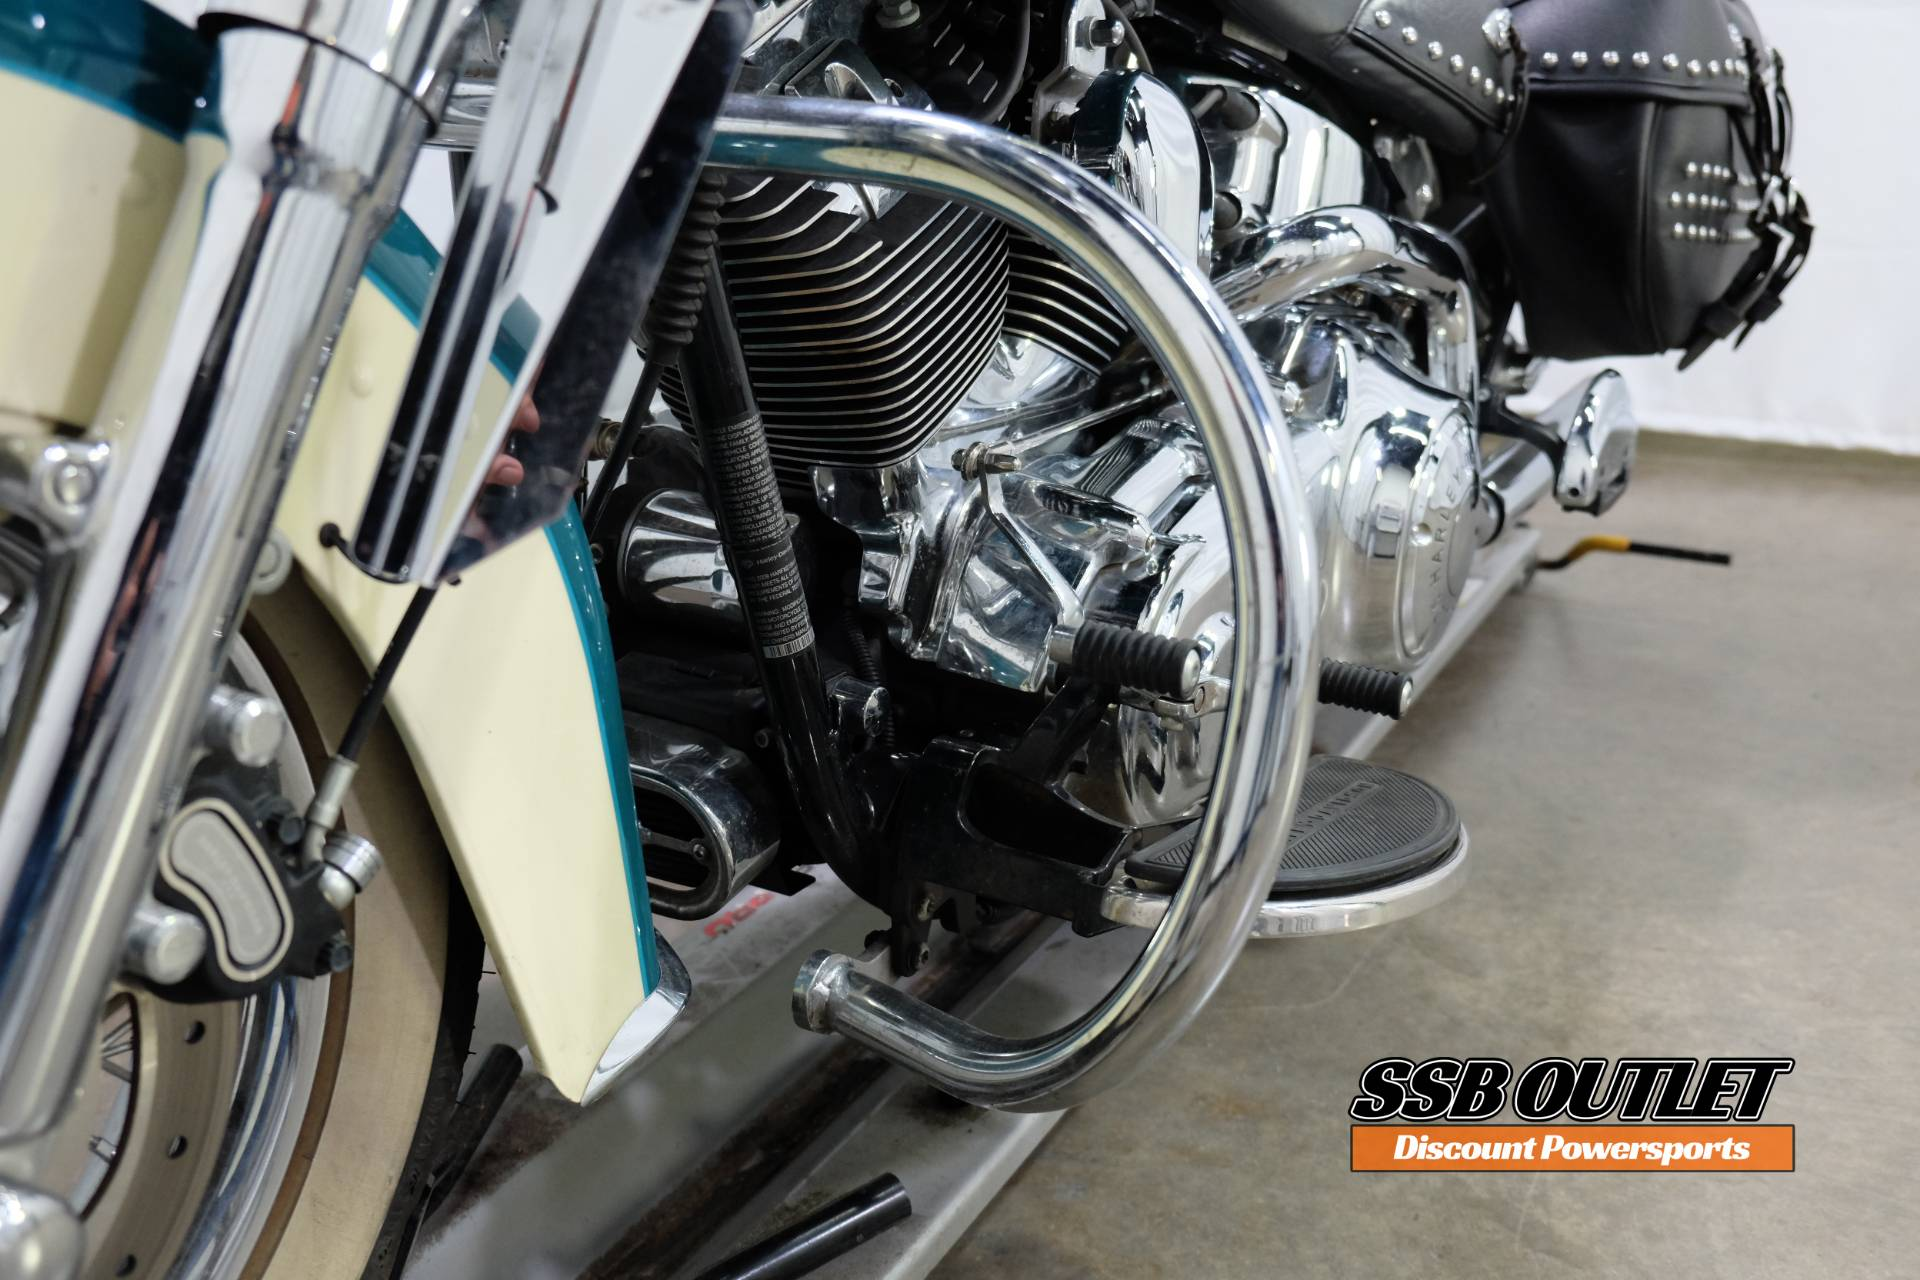 2009 Harley-Davidson Heritage Softail® Classic in Eden Prairie, Minnesota - Photo 22